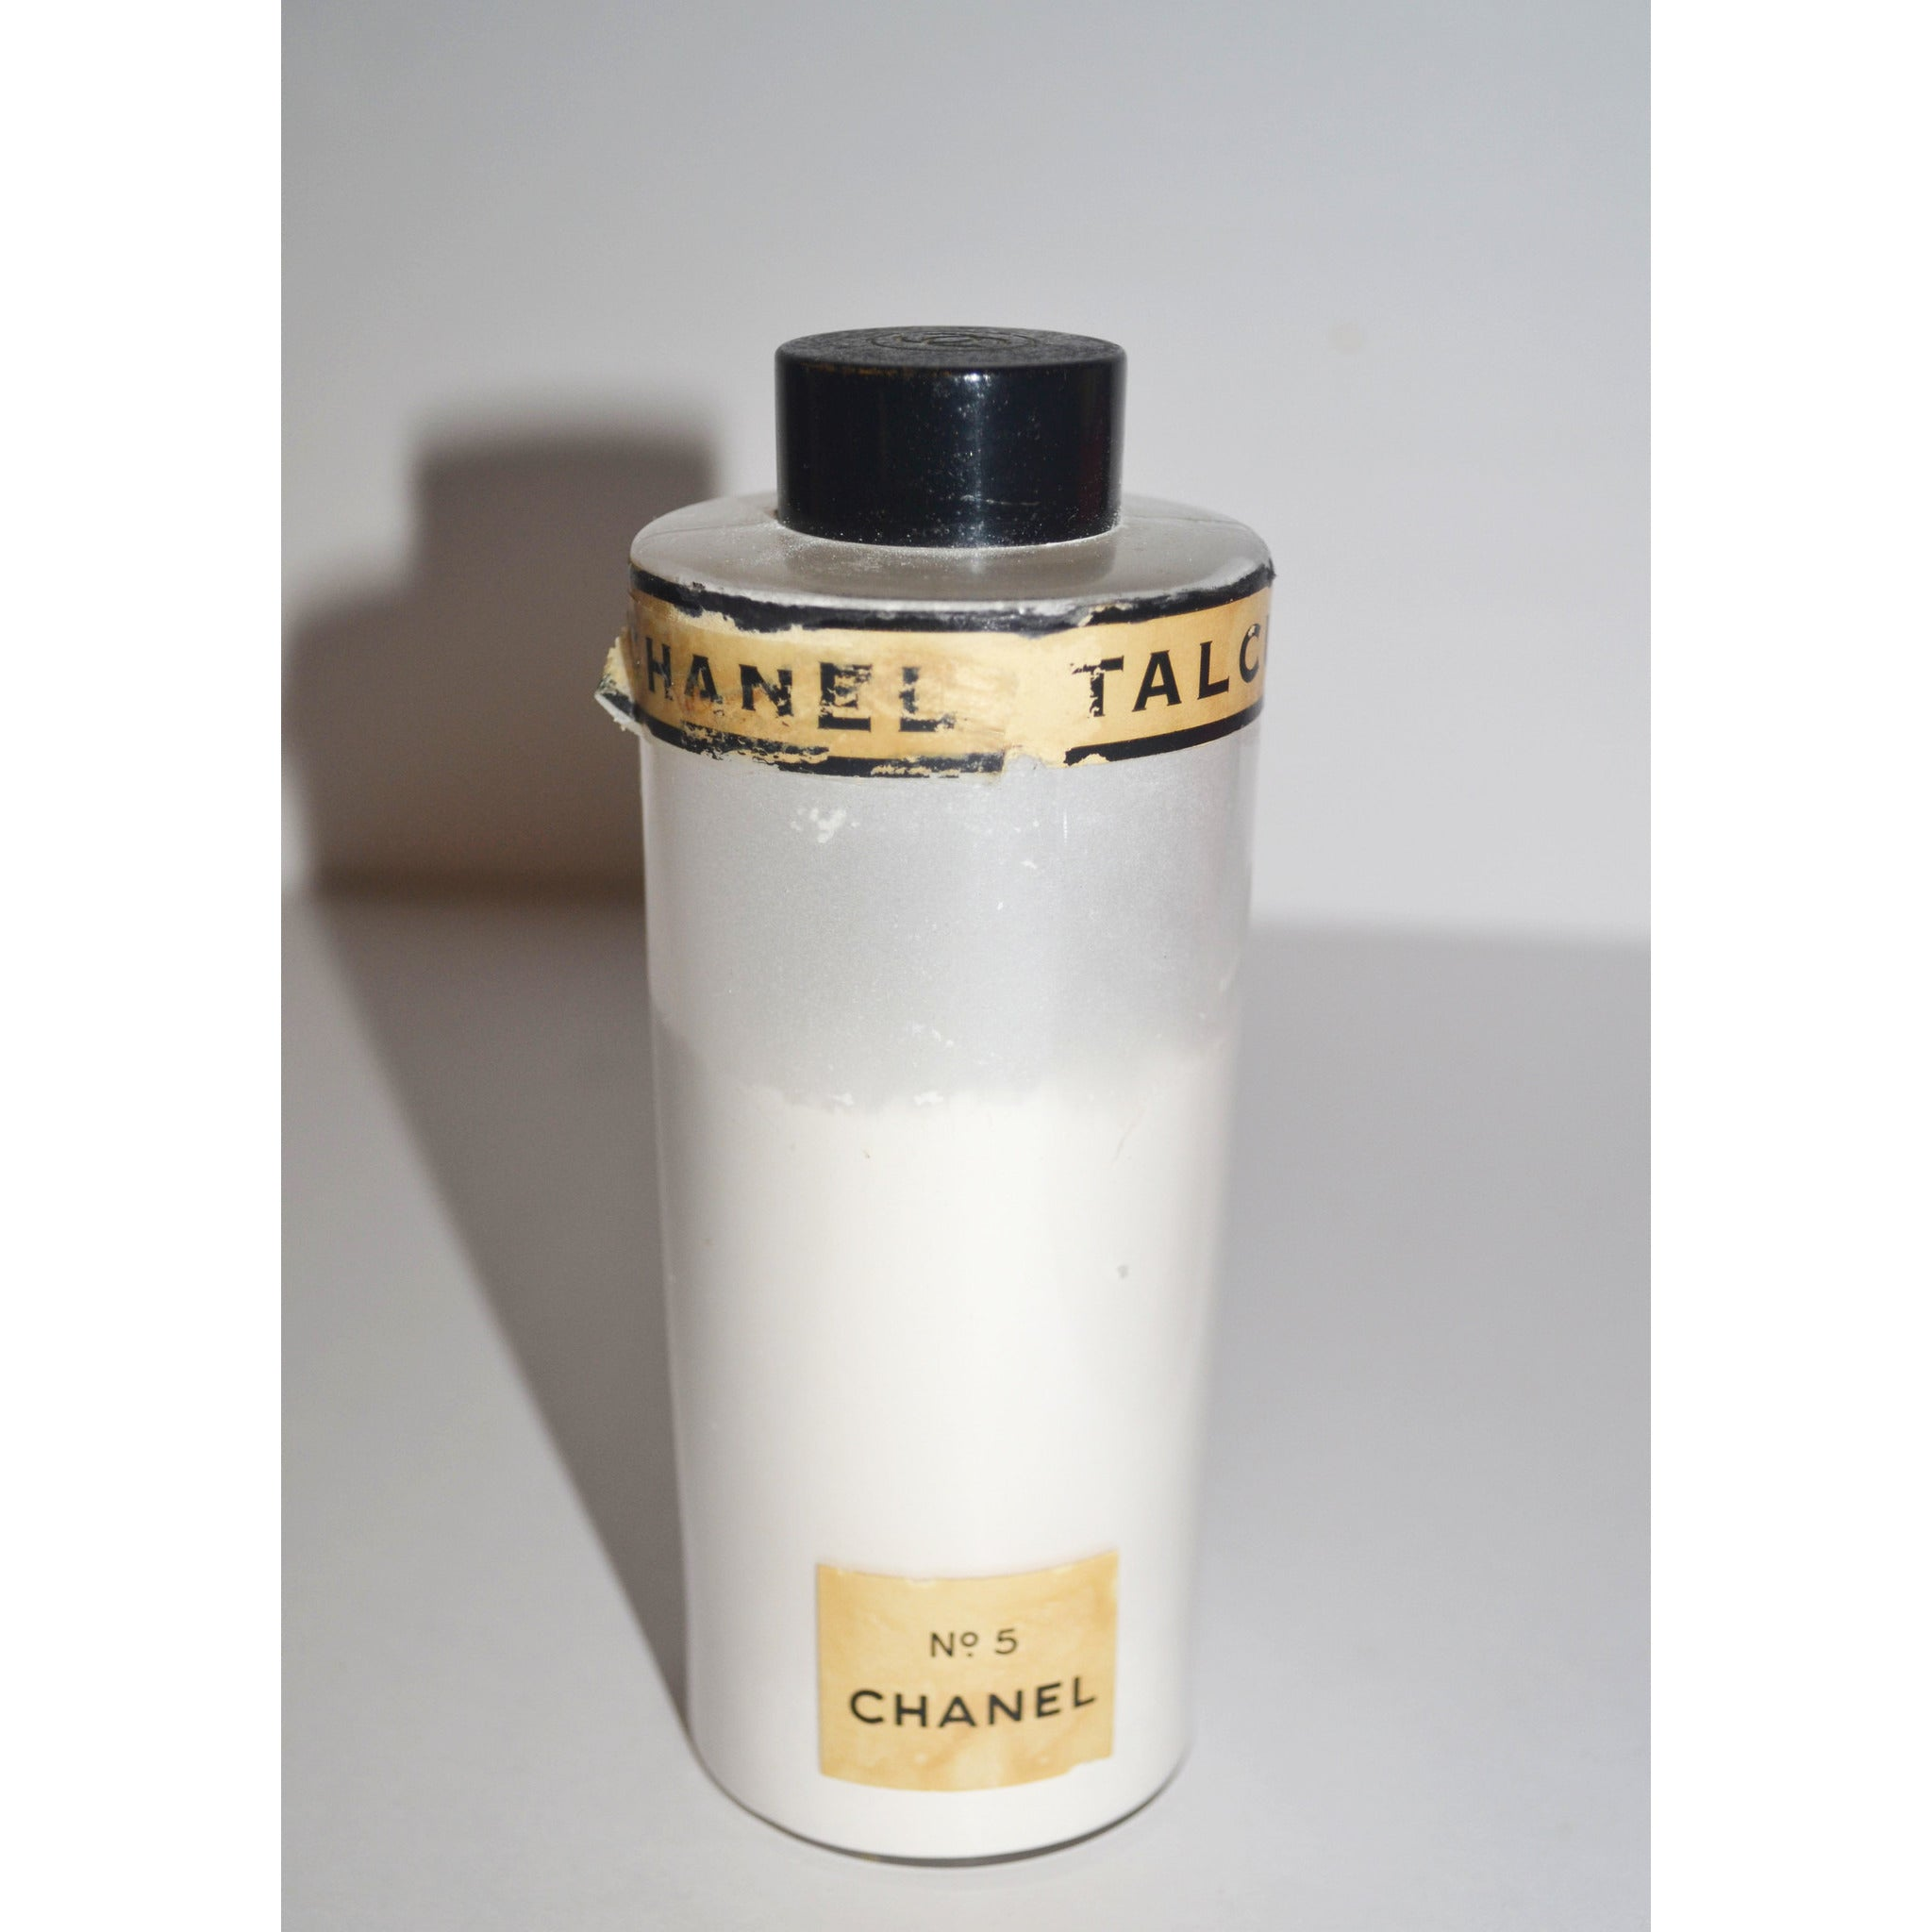 Vintage Chanel No. 5 Talc